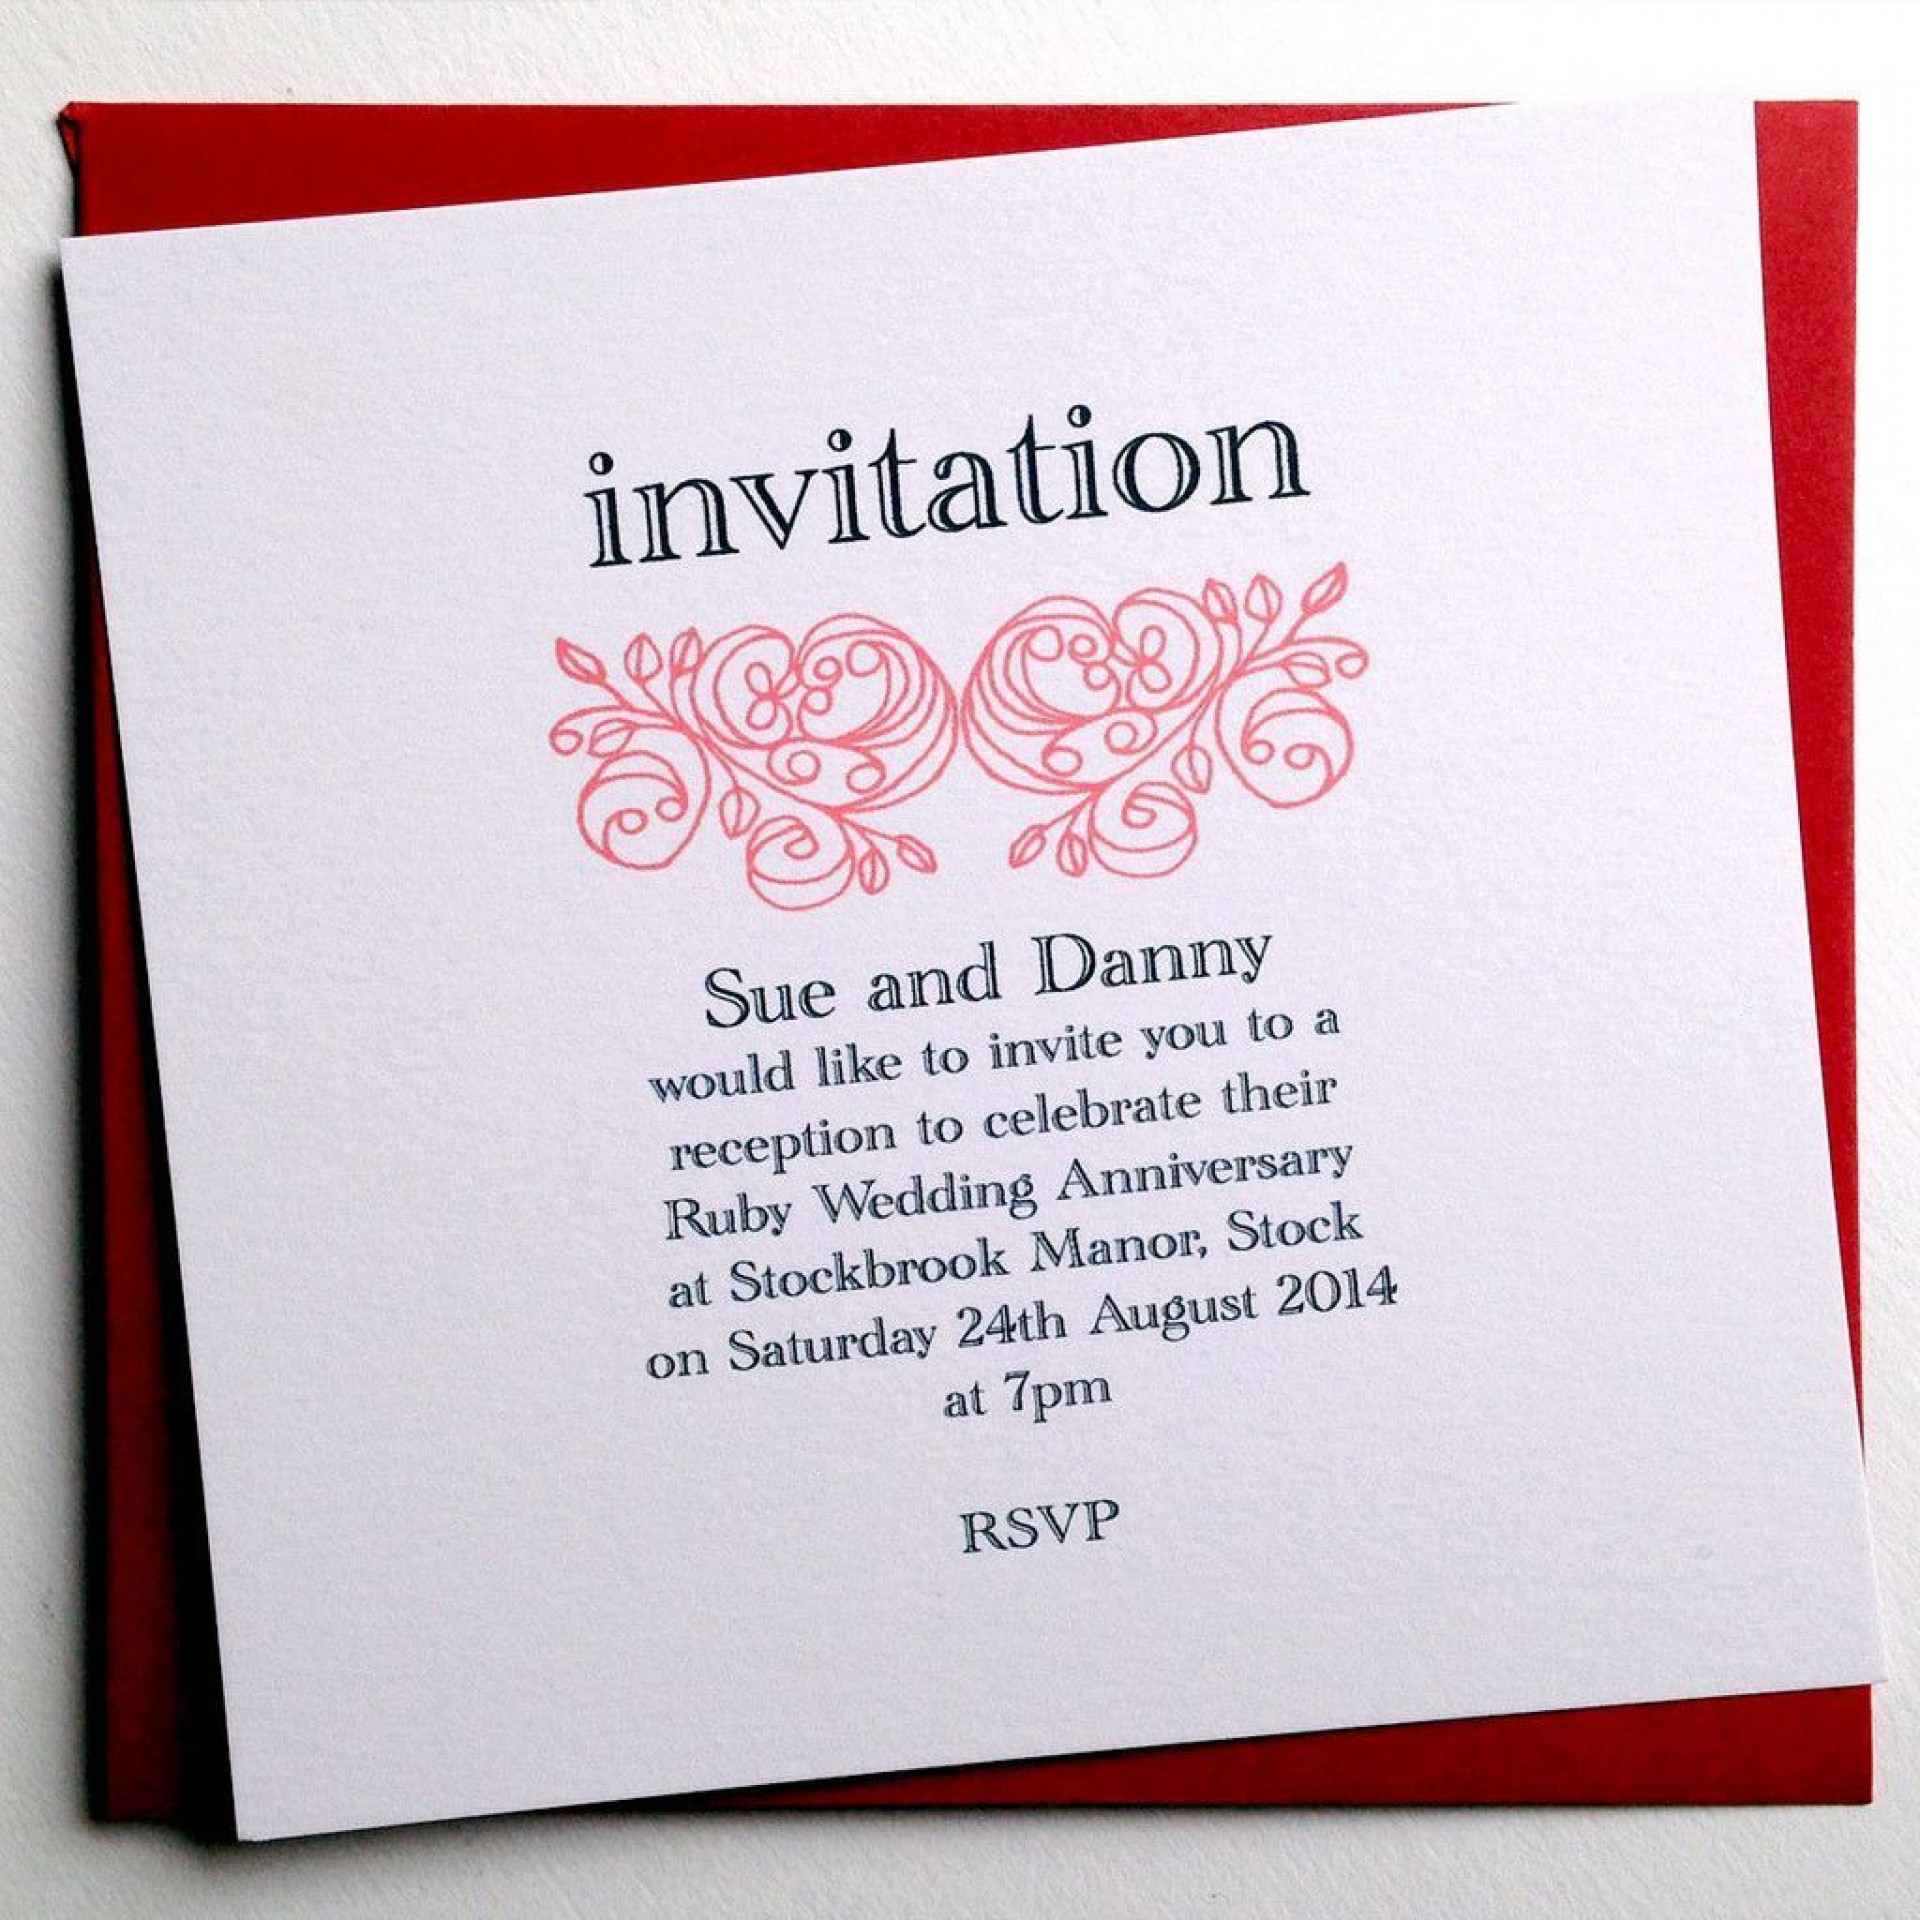 005 Beautiful 50th Anniversary Invitation Card Template High Definition  Templates Free1920